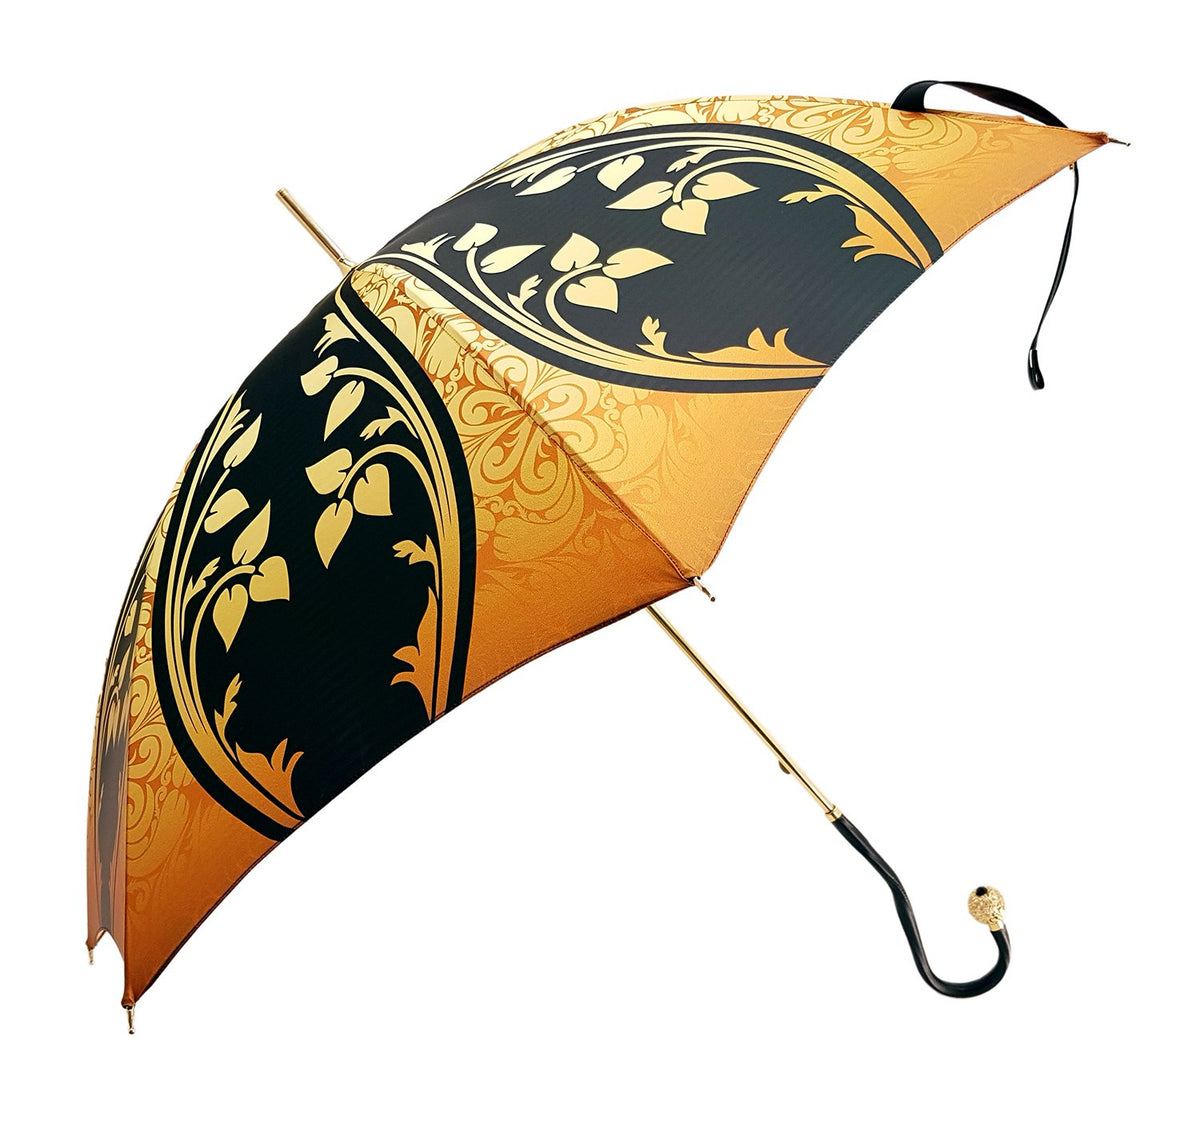 leather handle women's umbrella